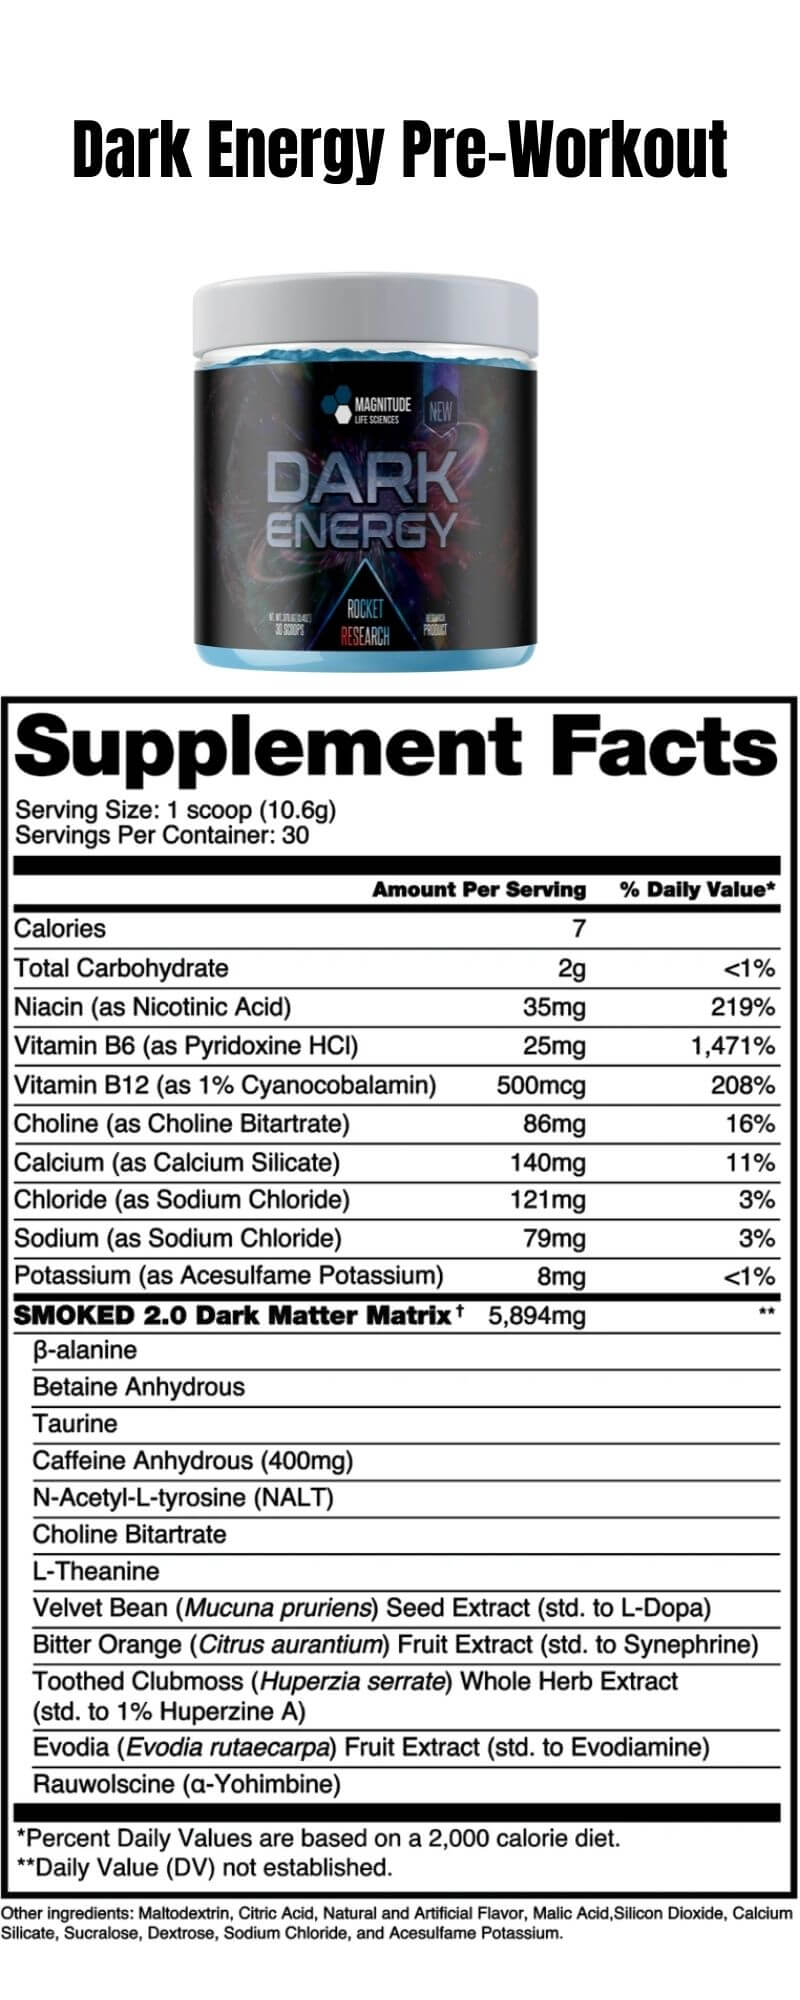 Dark energy pre-workout composition  infography